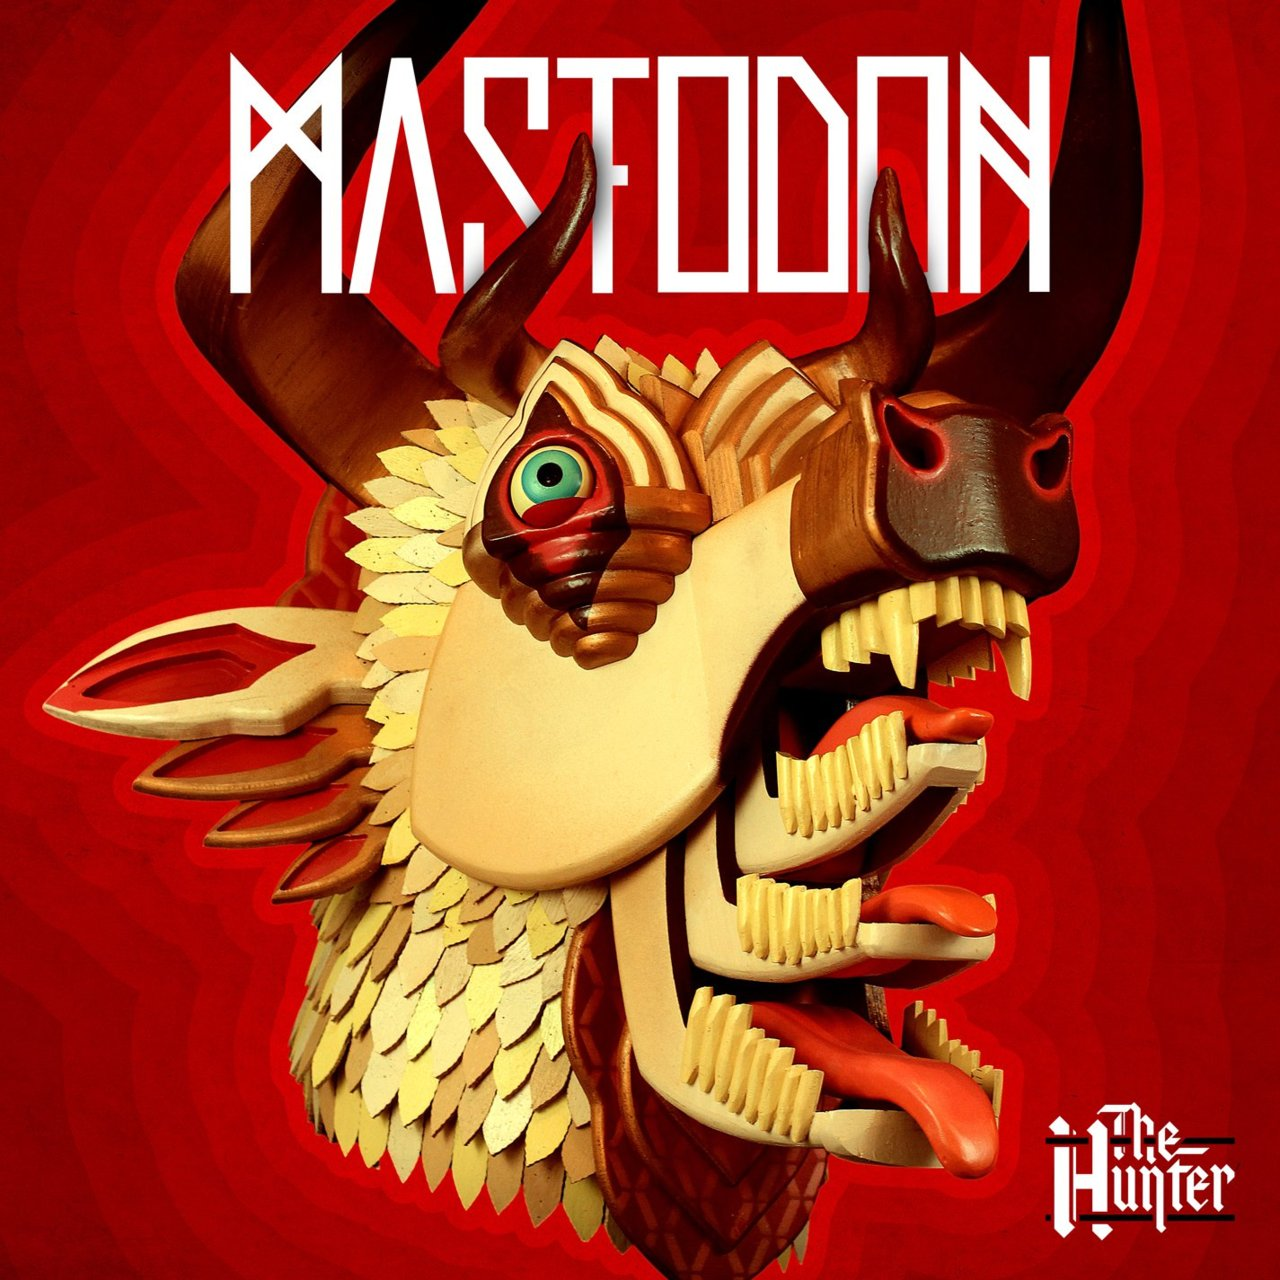 ON brand for this band,  Mastodon's new The Hunter cover art is a solid, structured vibrating art piece for a complex and bone-jarring structured music. Stunning heavy lifting.